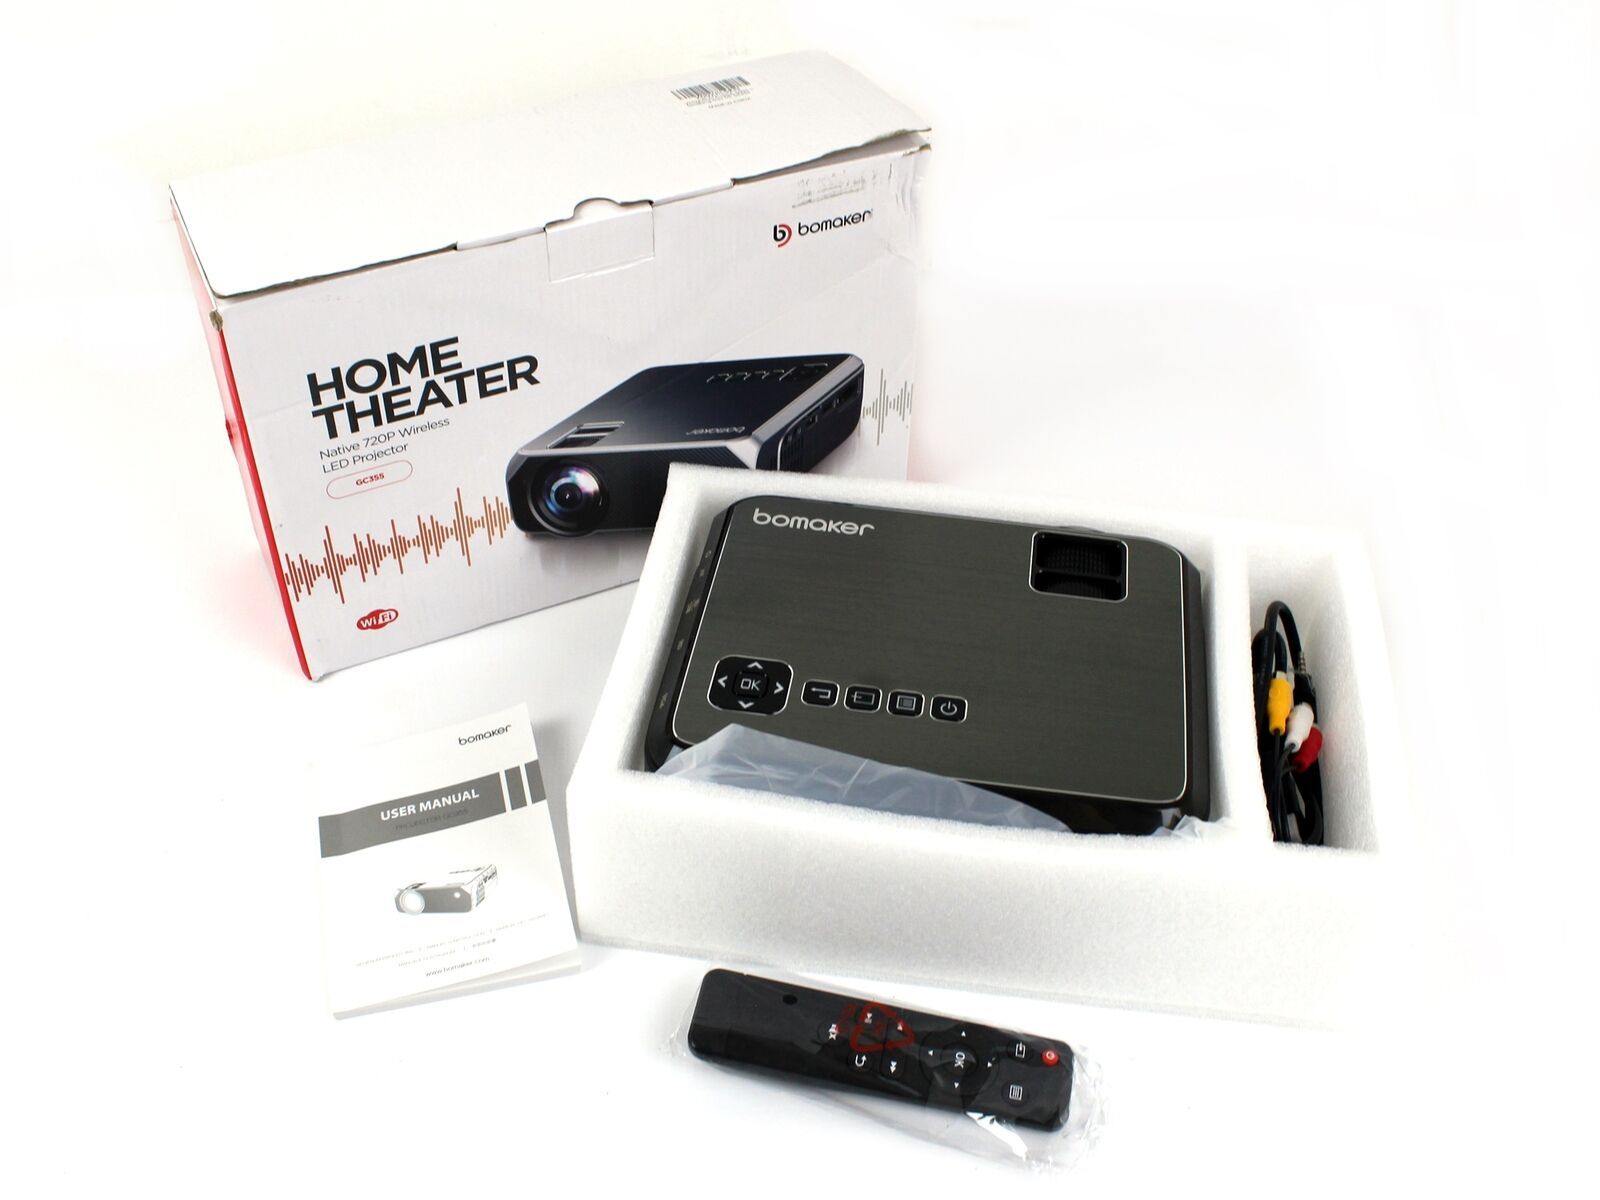 GC355 kcliquidation Bomaker Mone Theater Native 720p Wireless LED Projector GC355